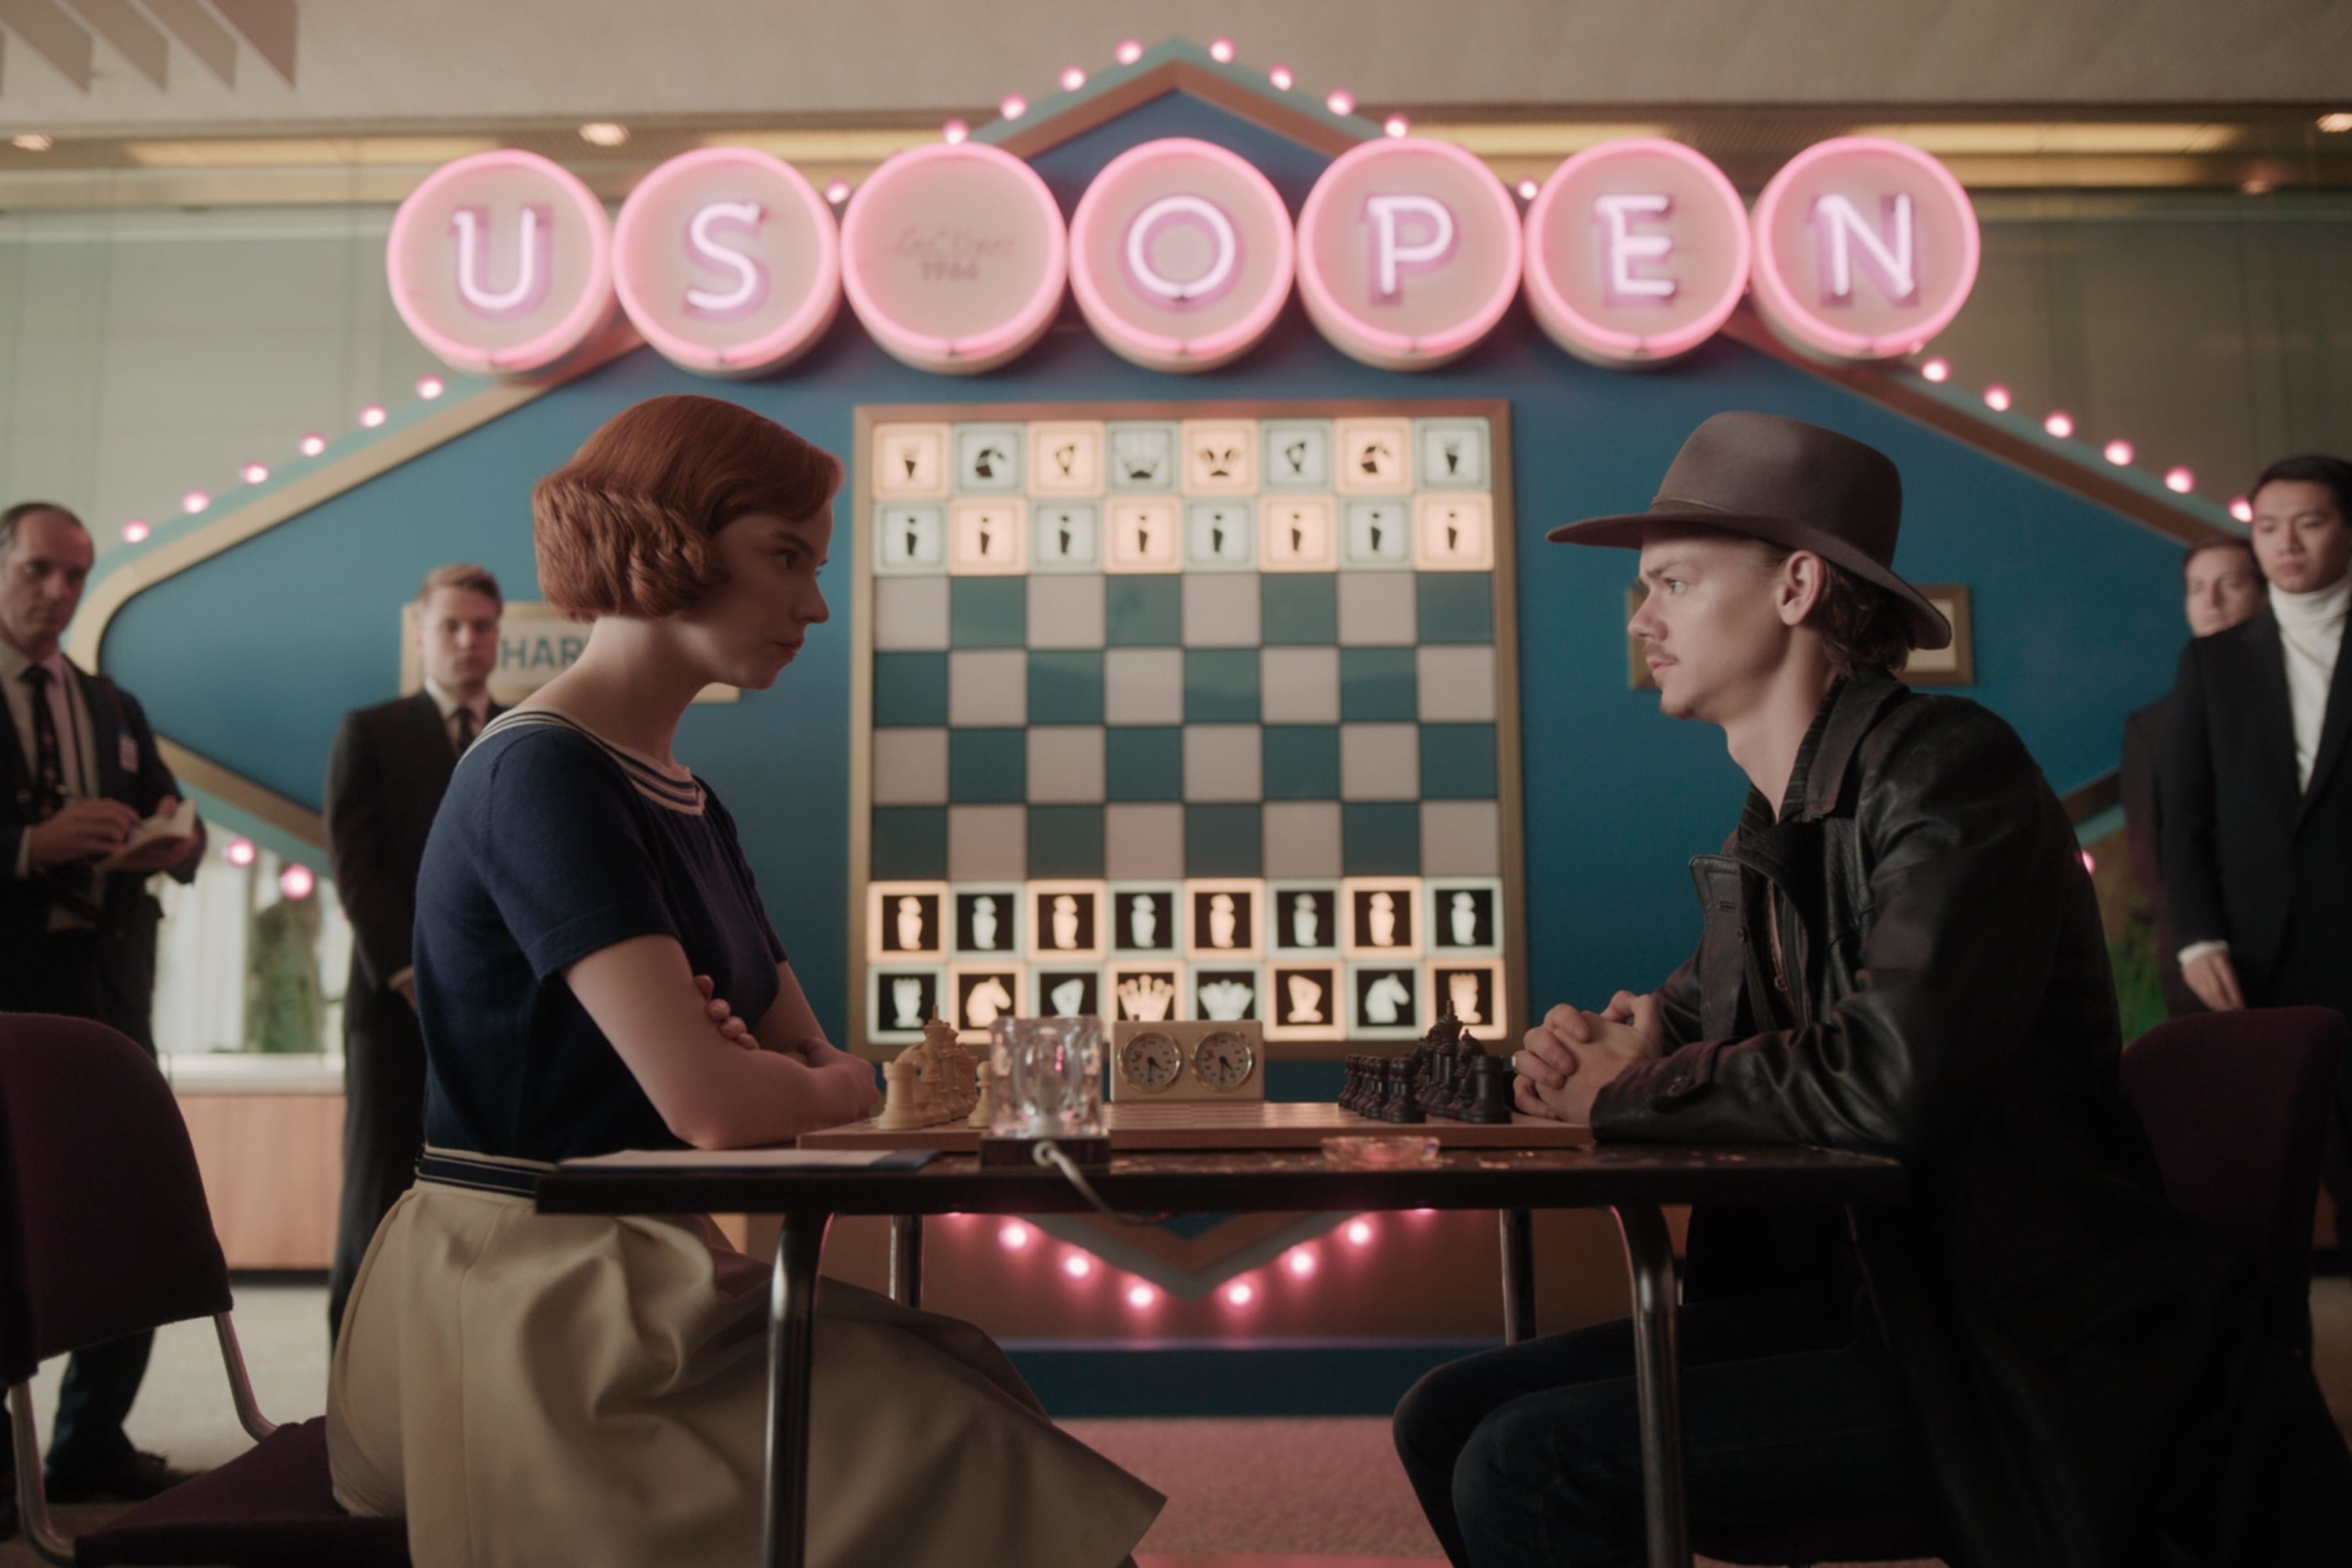 Beth and Benny face off in a chess match as several people watch